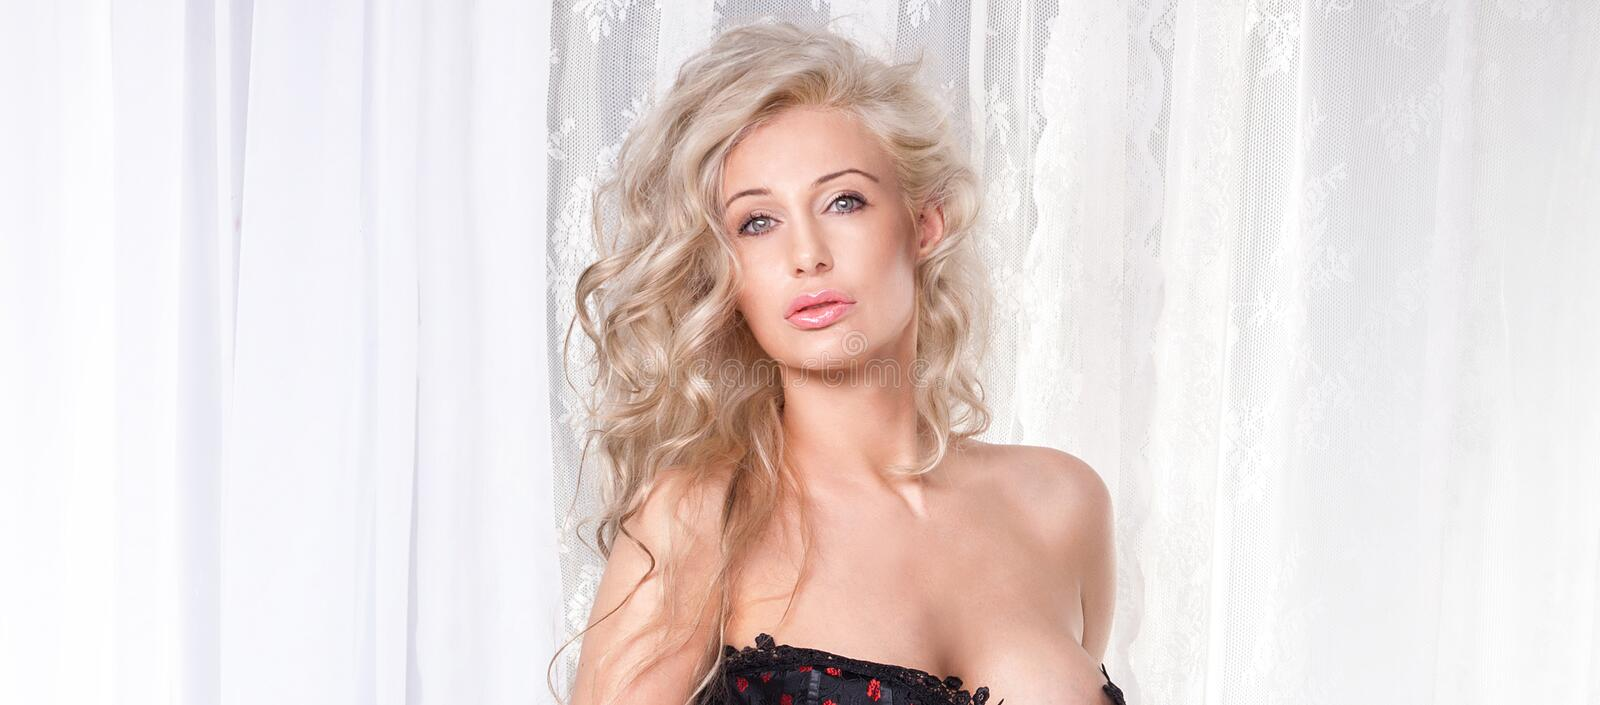 Beauty portrait of blonde lady stock image